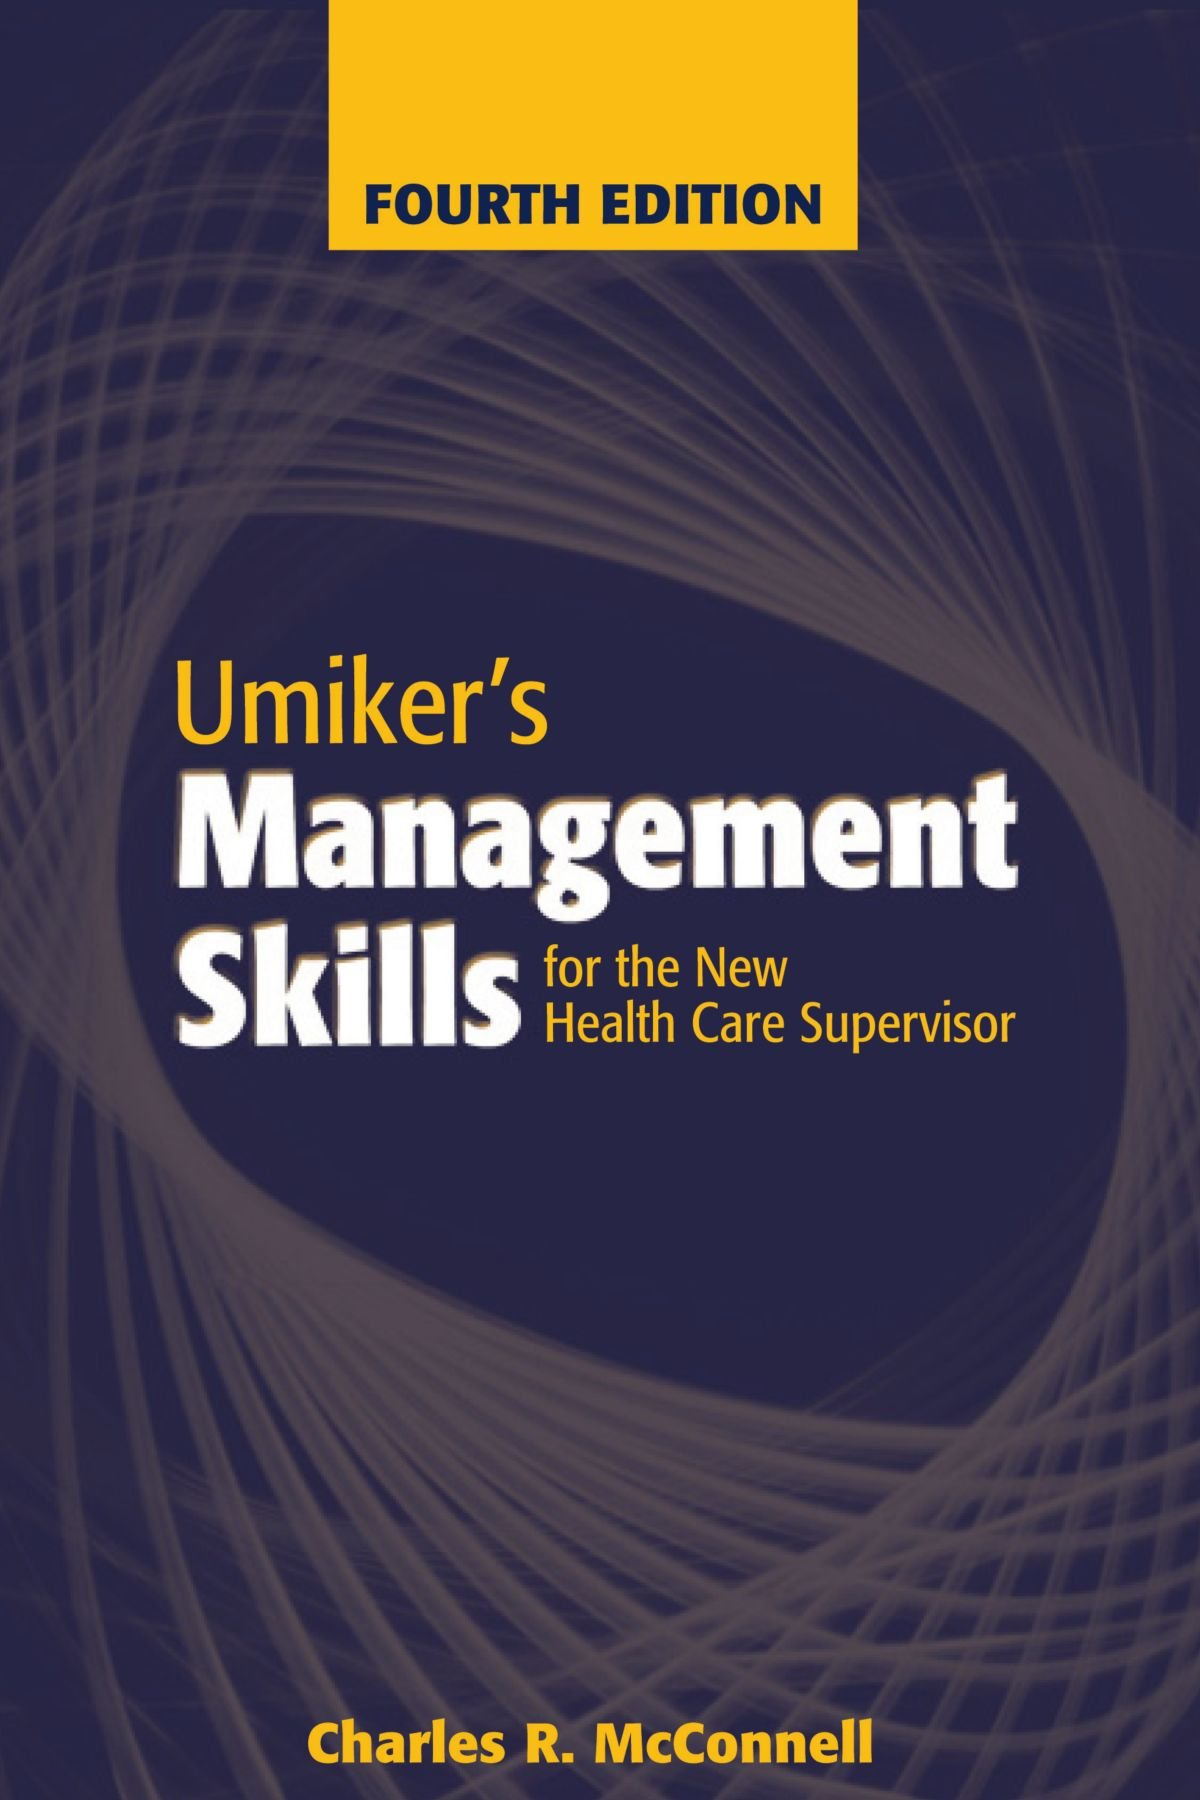 Umiker's Management Skills for the New Health Care Supervisor: Management Skills for the New Health Care Supervisor